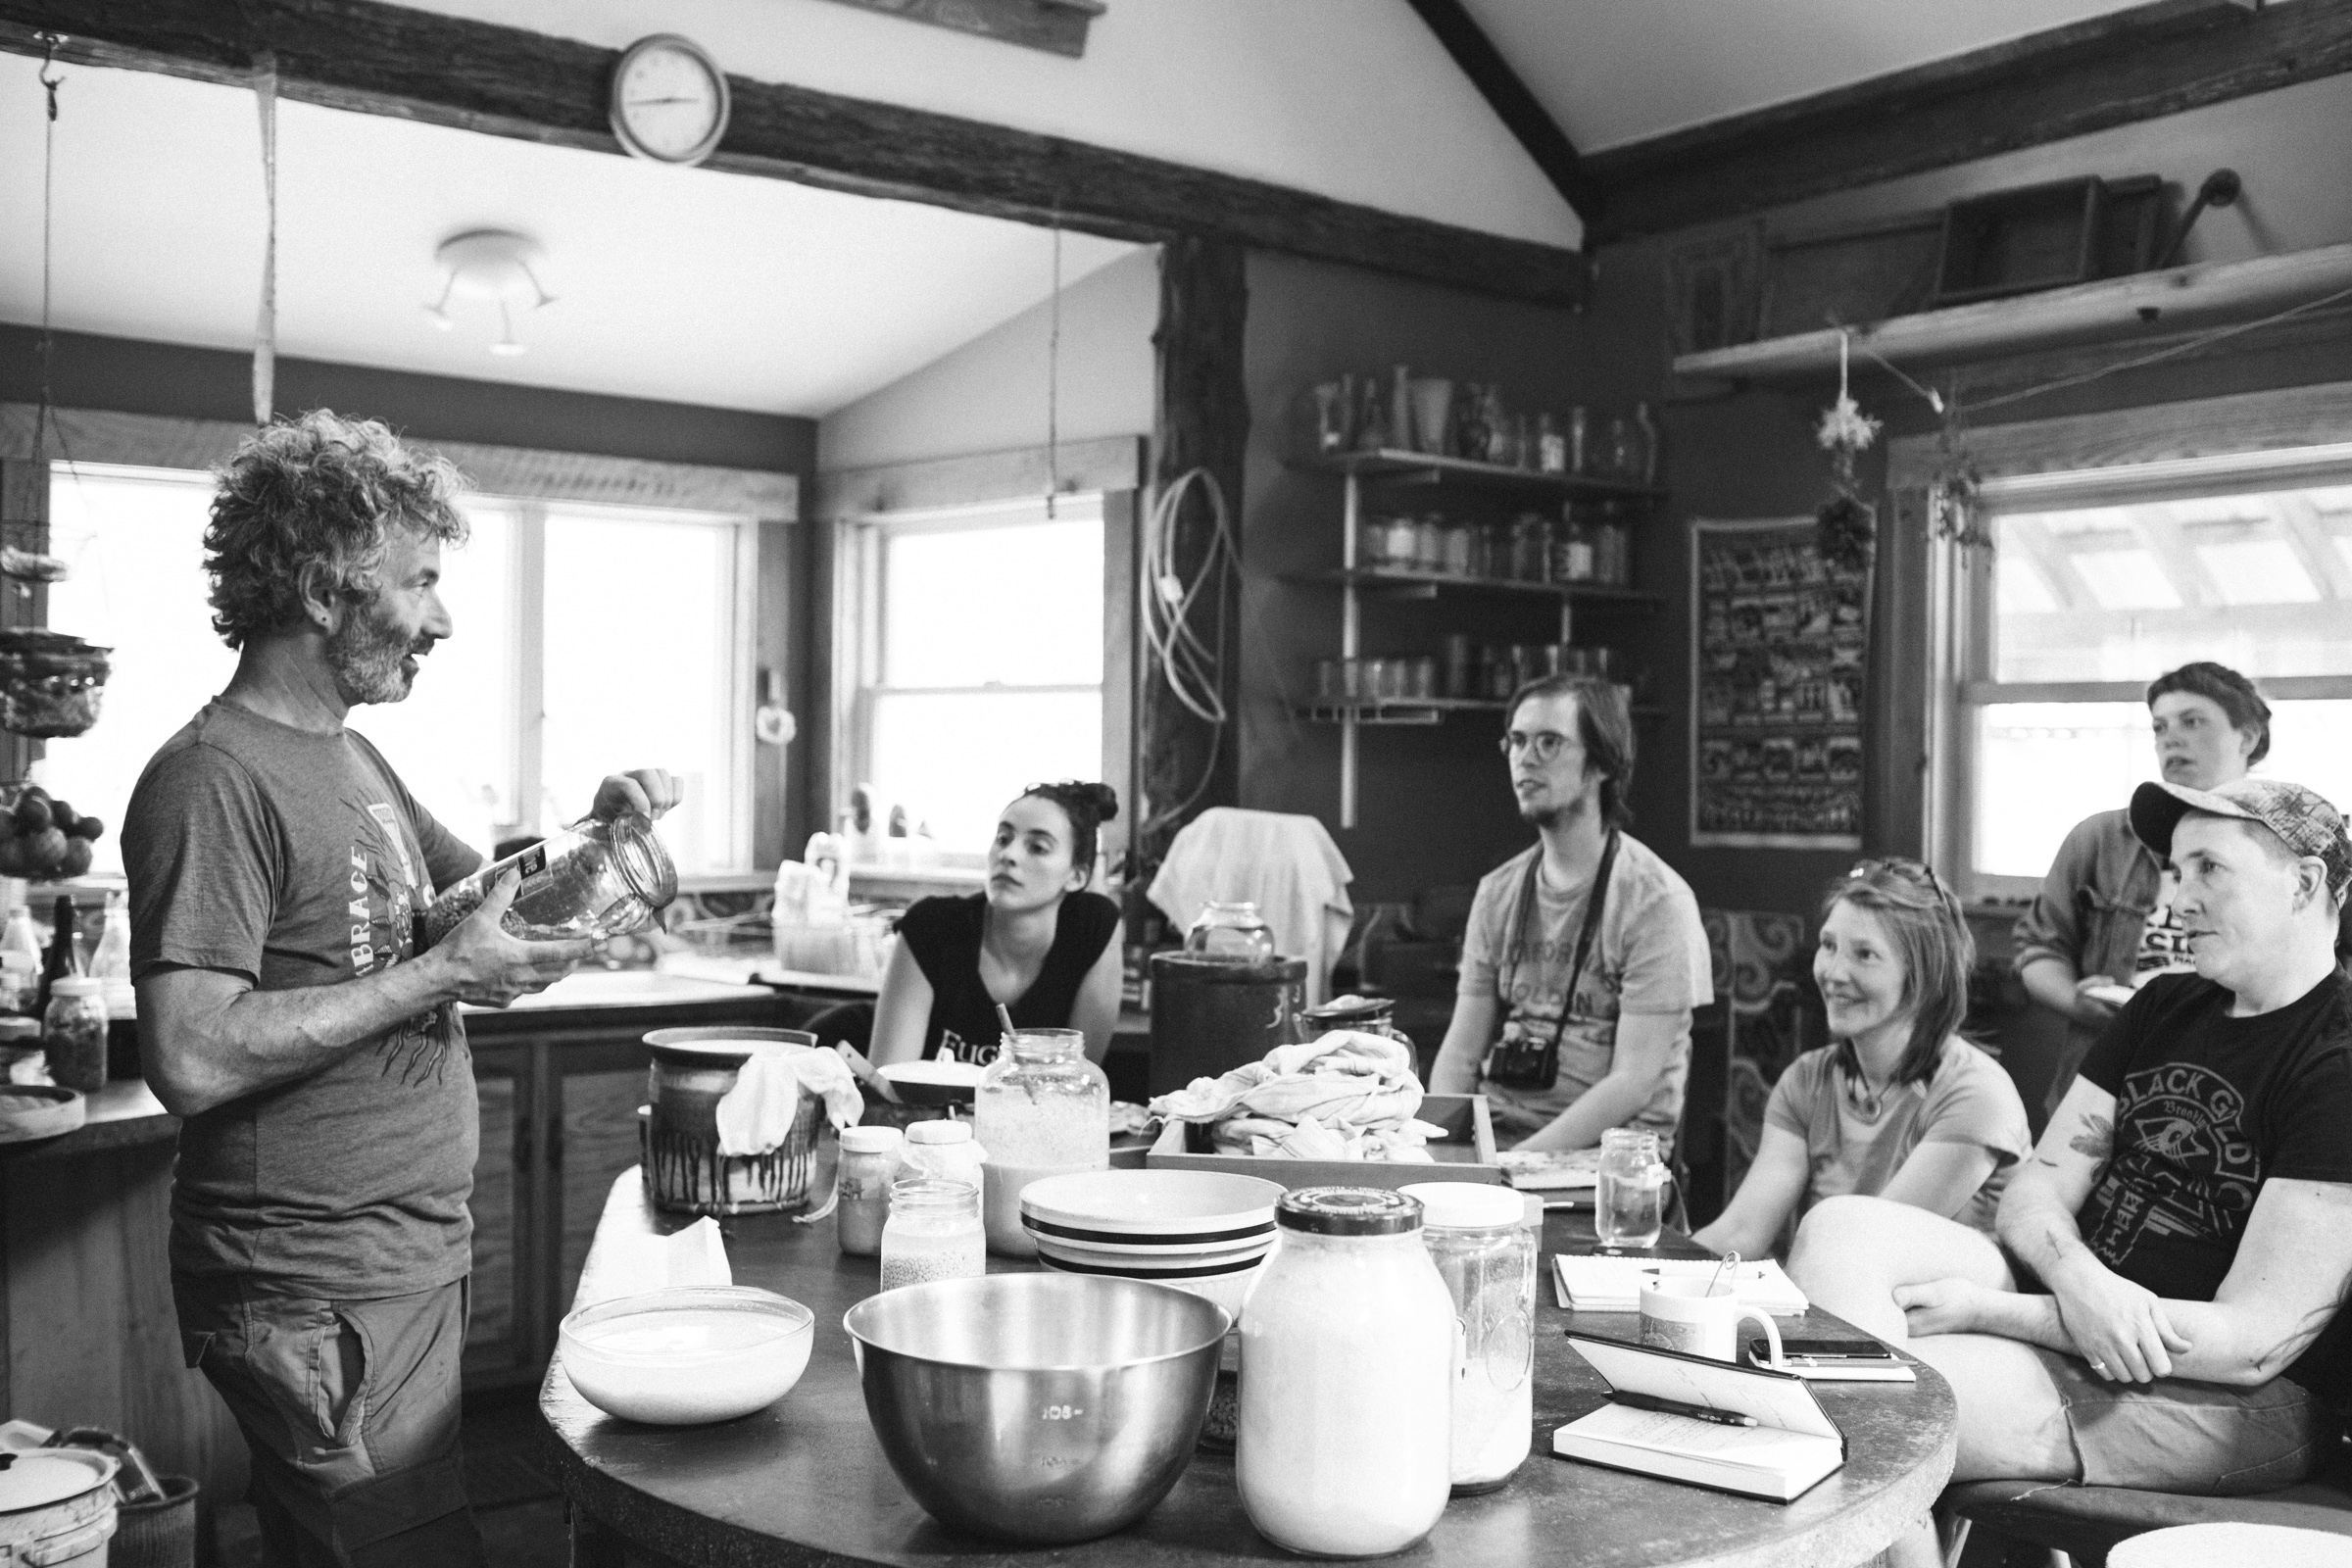 Morning lesson - Typically all lessons took place in Sandor's kitchen, where each of us took turns getting our hands messy and dirty.